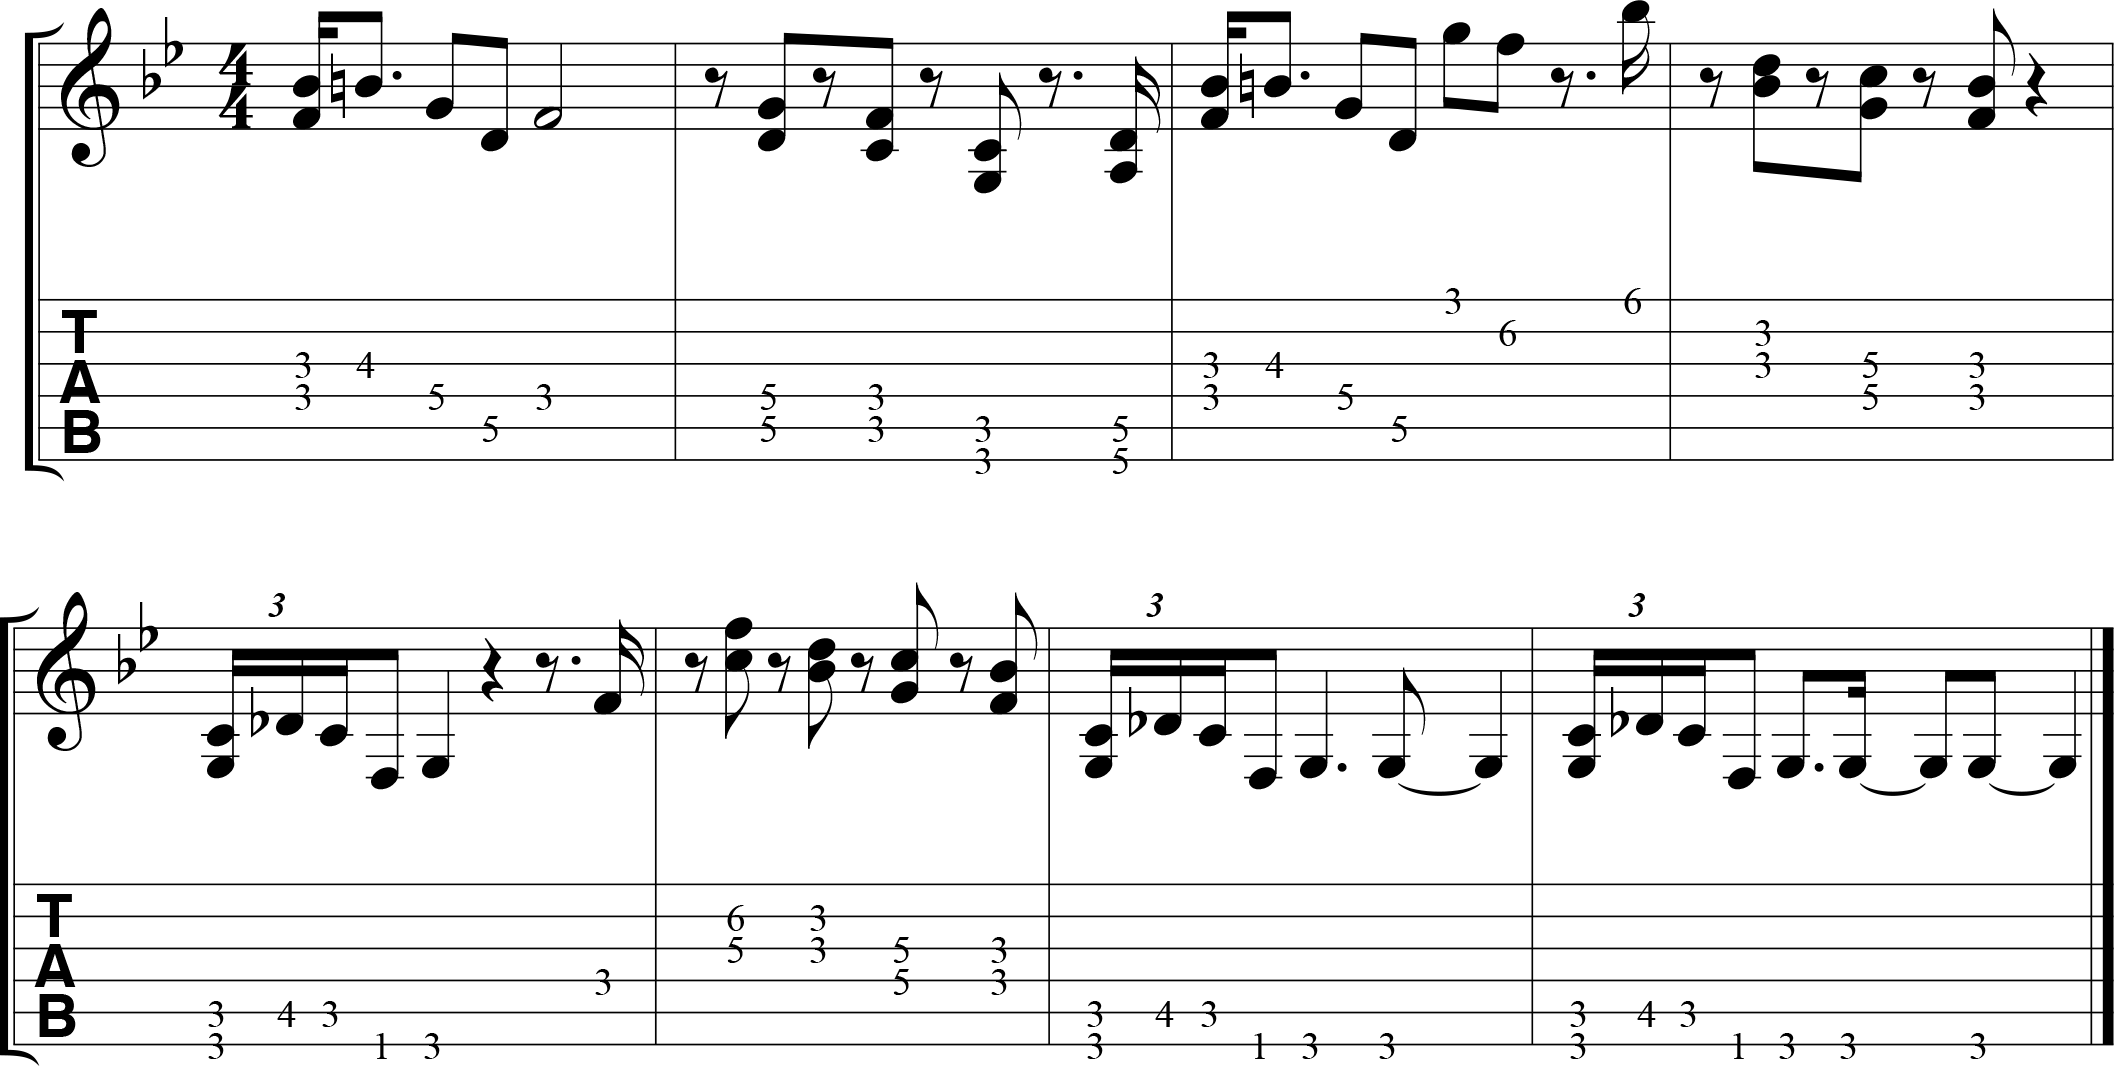 Double stop example--E major scale in diatonic thirds.